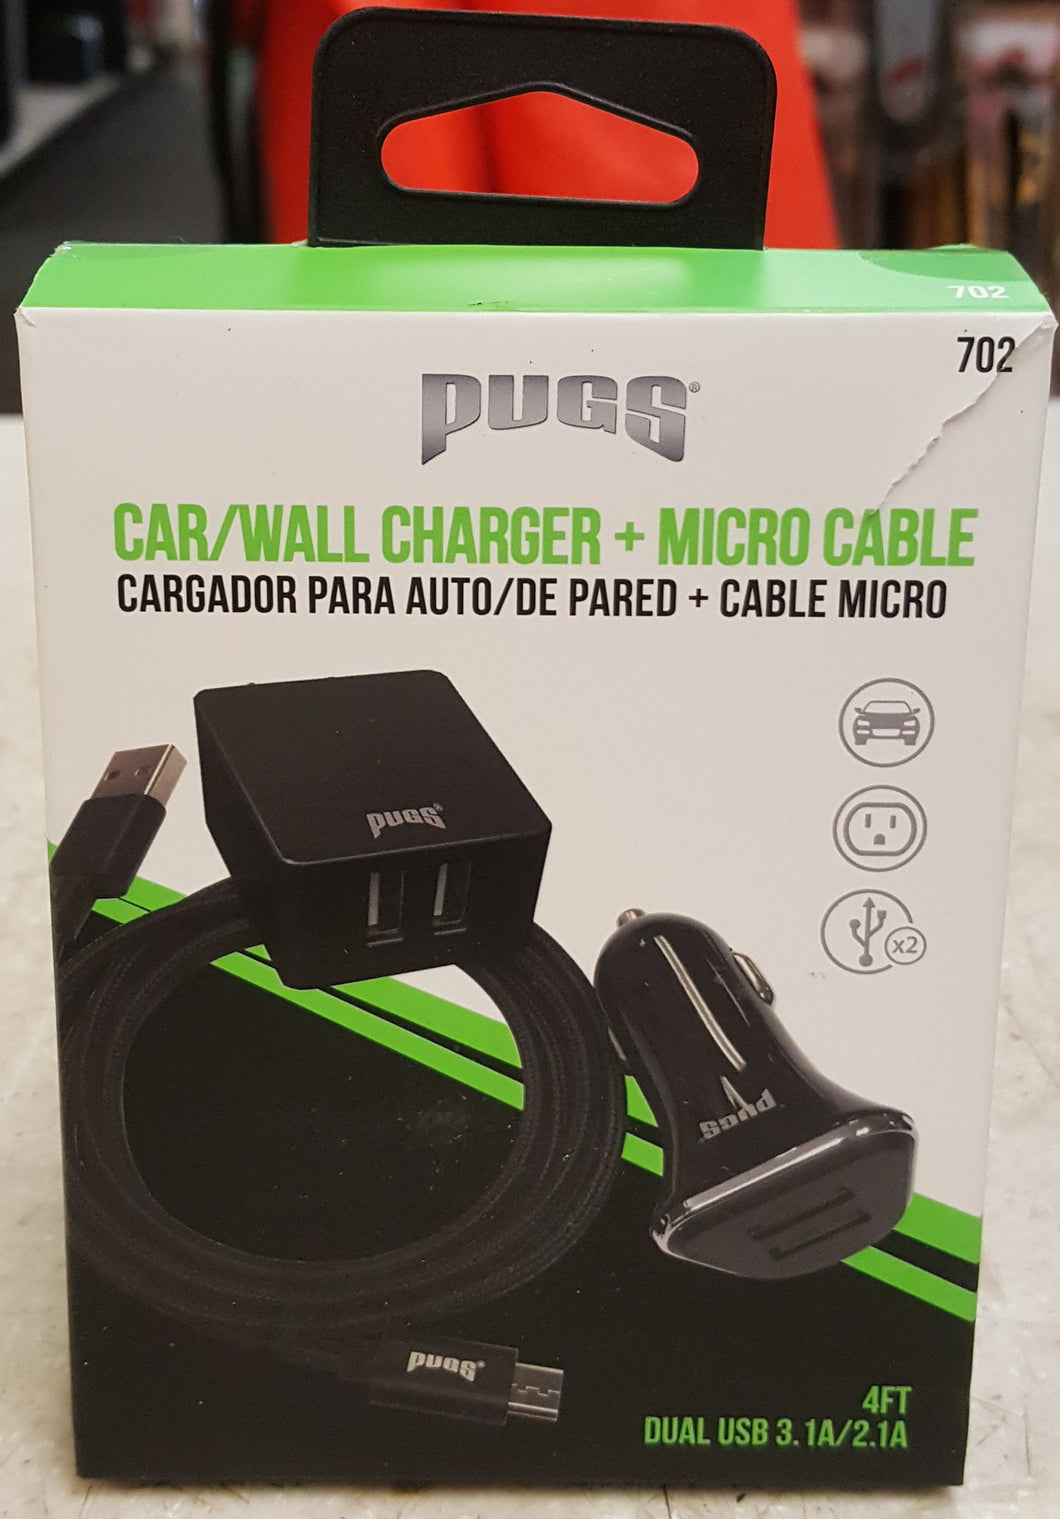 Pugs 702 3-in-1 Micro Cable/Car/Wall Charger